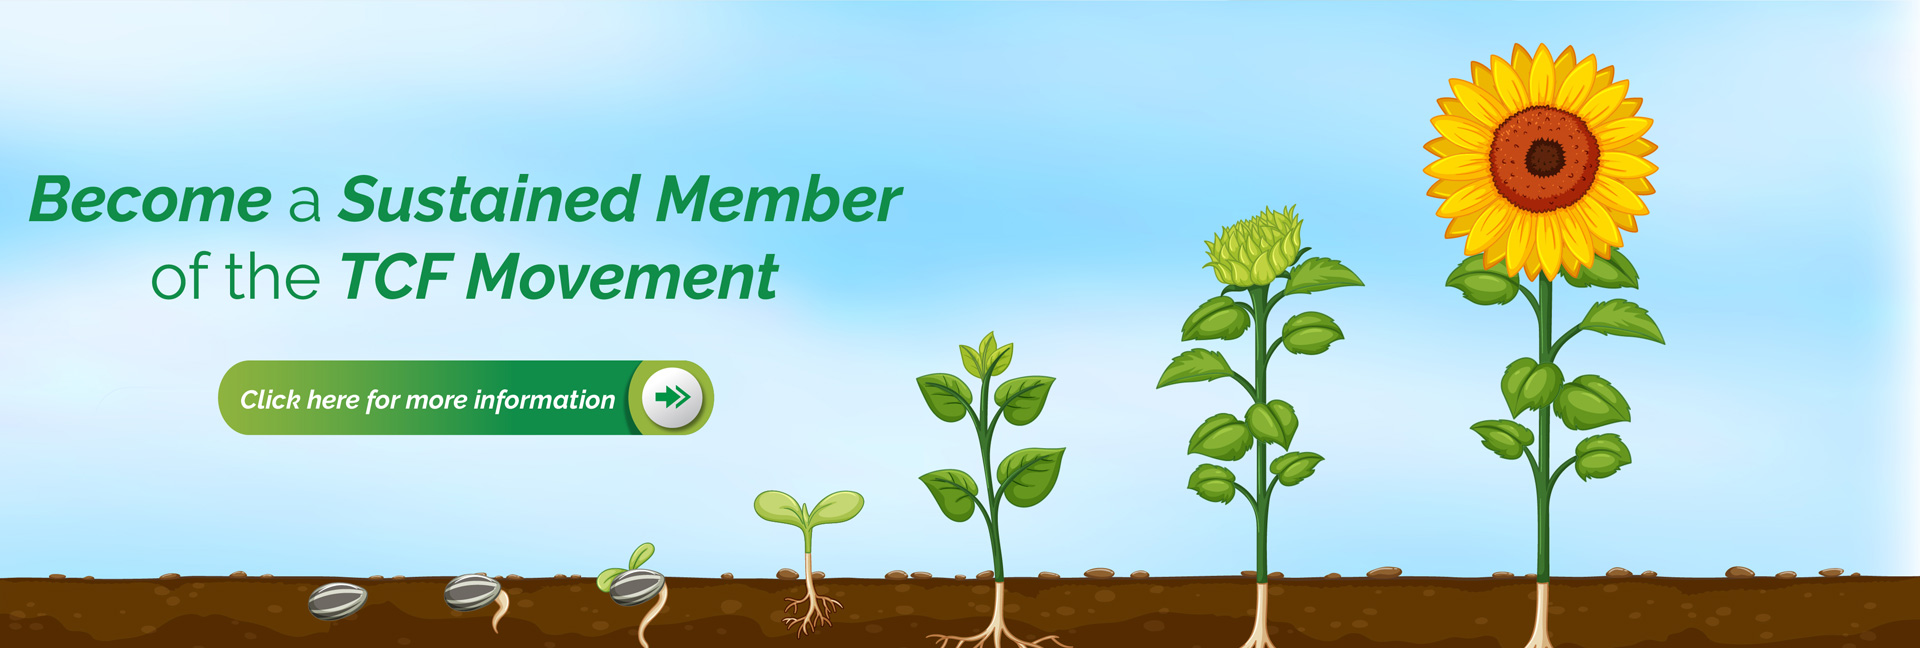 become-a-sustained-member-of-the-tcf-movement_homepage